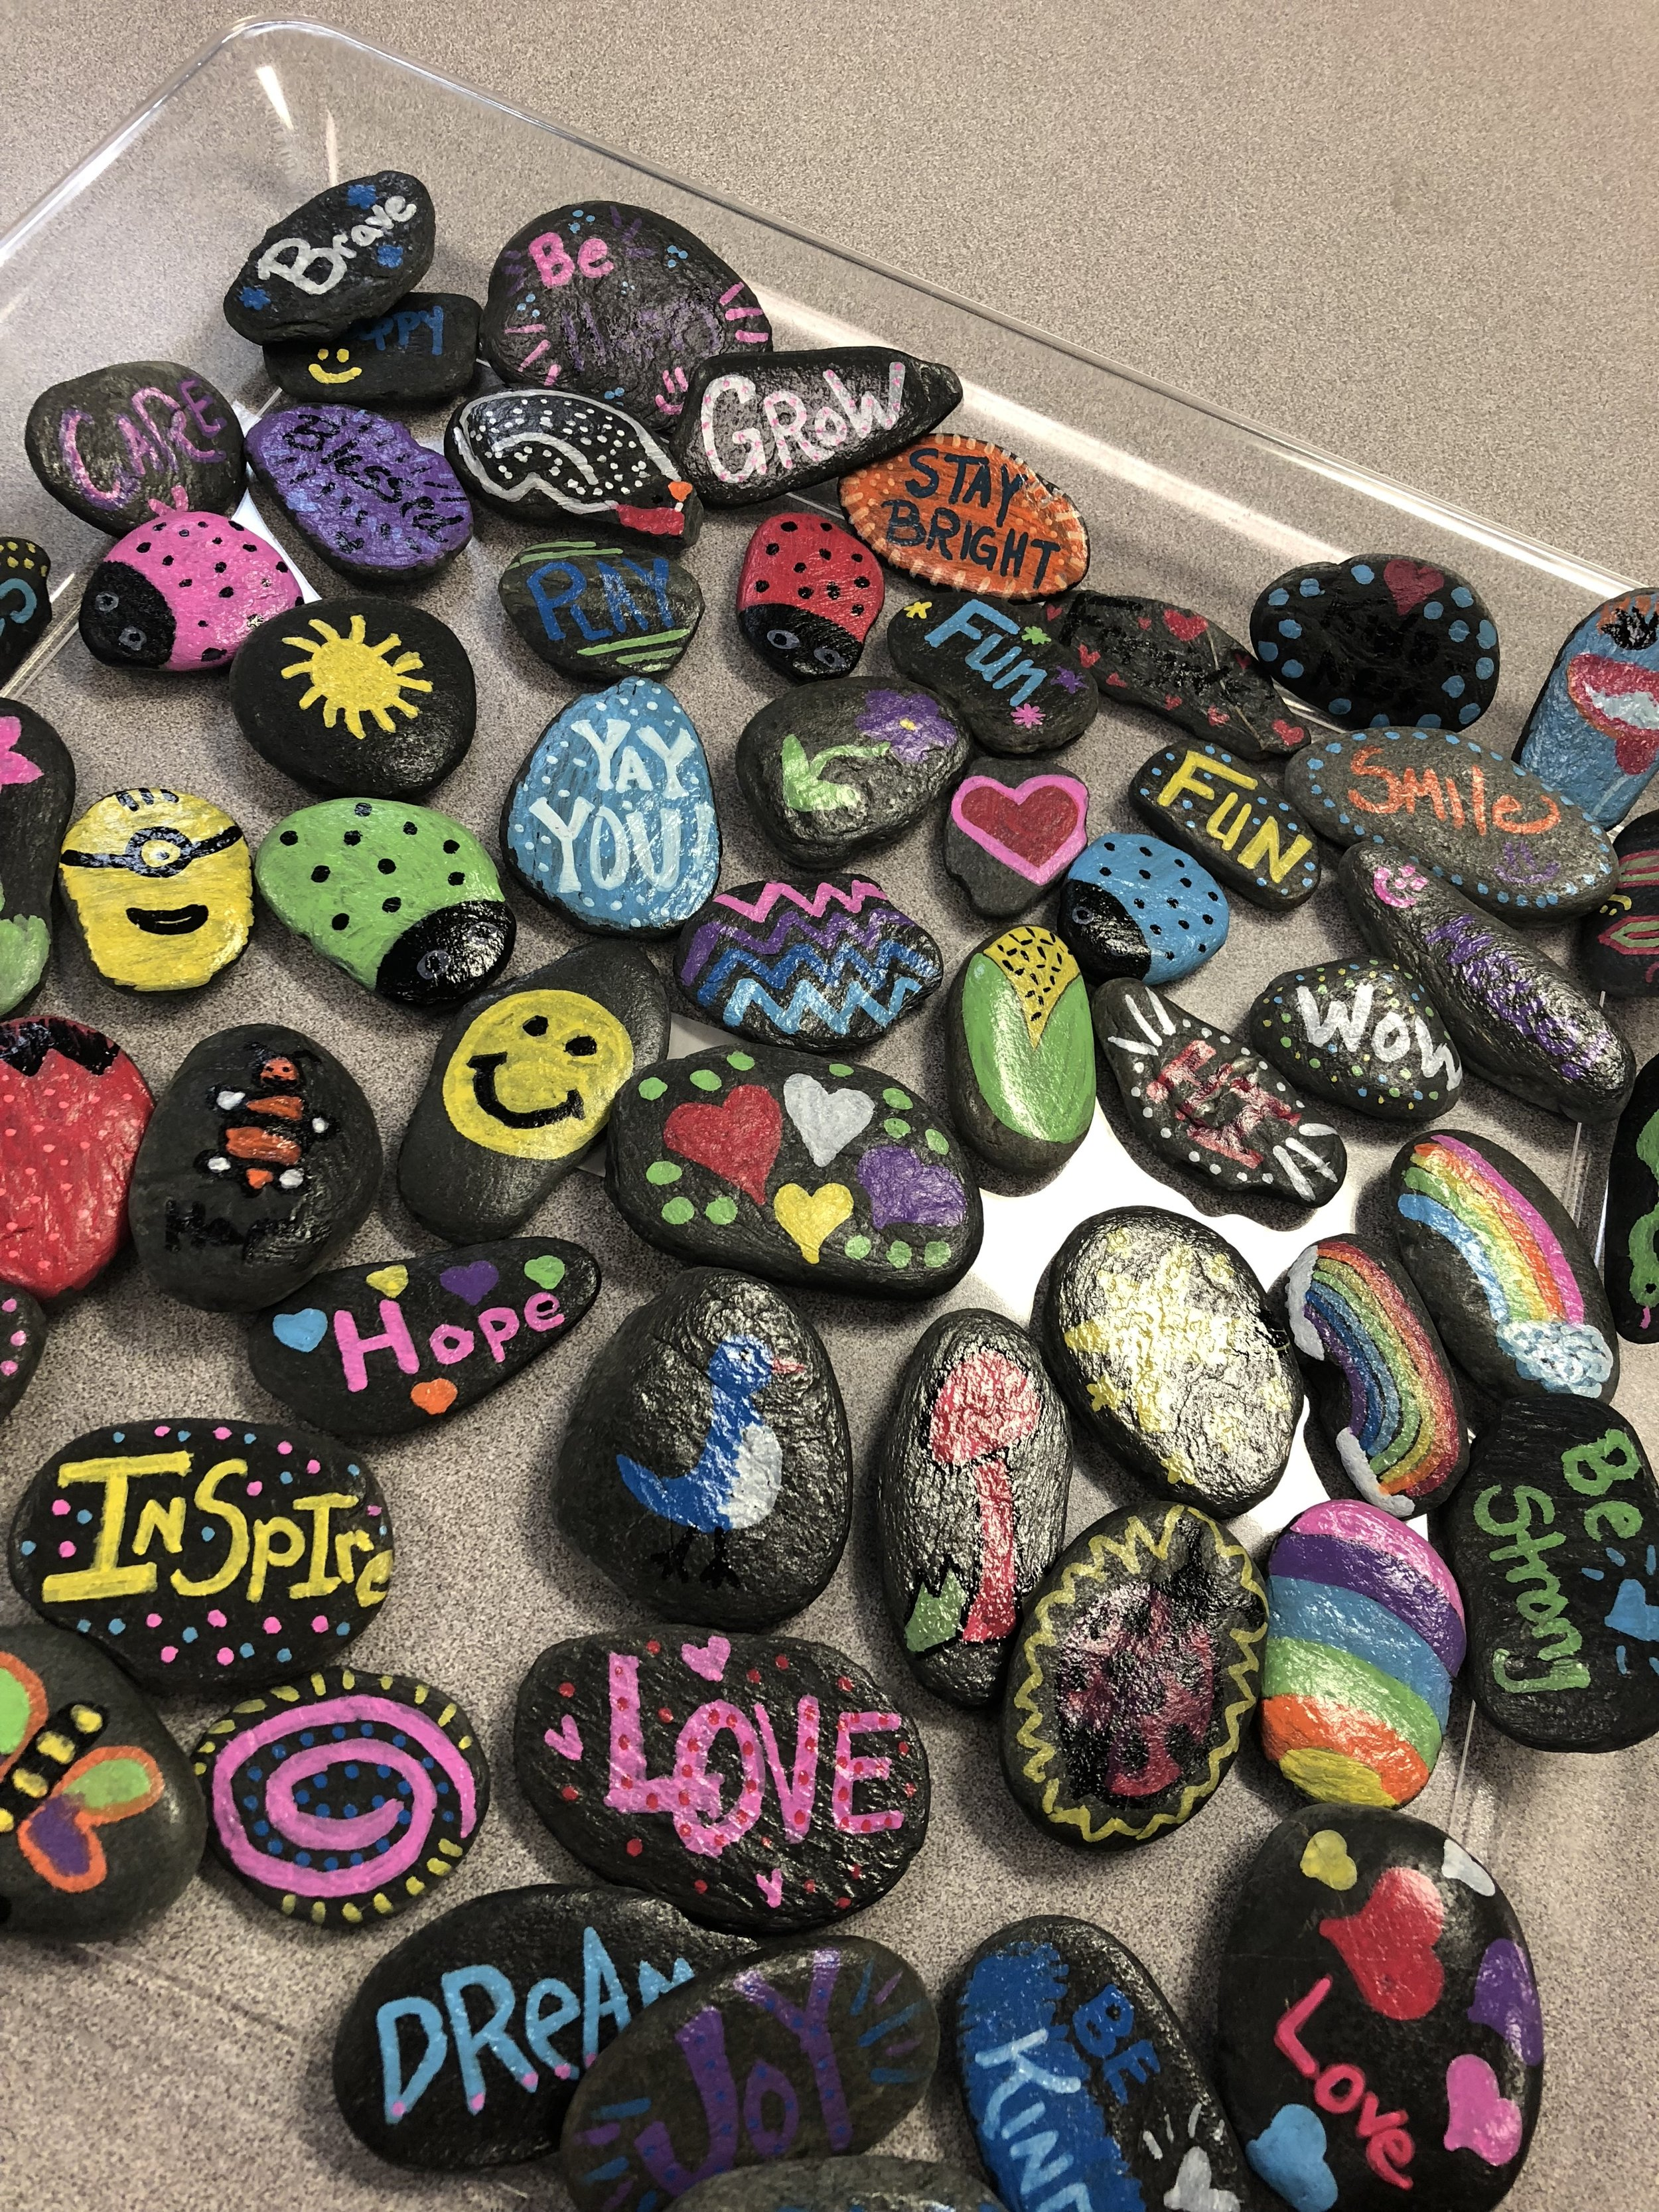 35 Random Acts of Kindness - Hide Kindness Stones